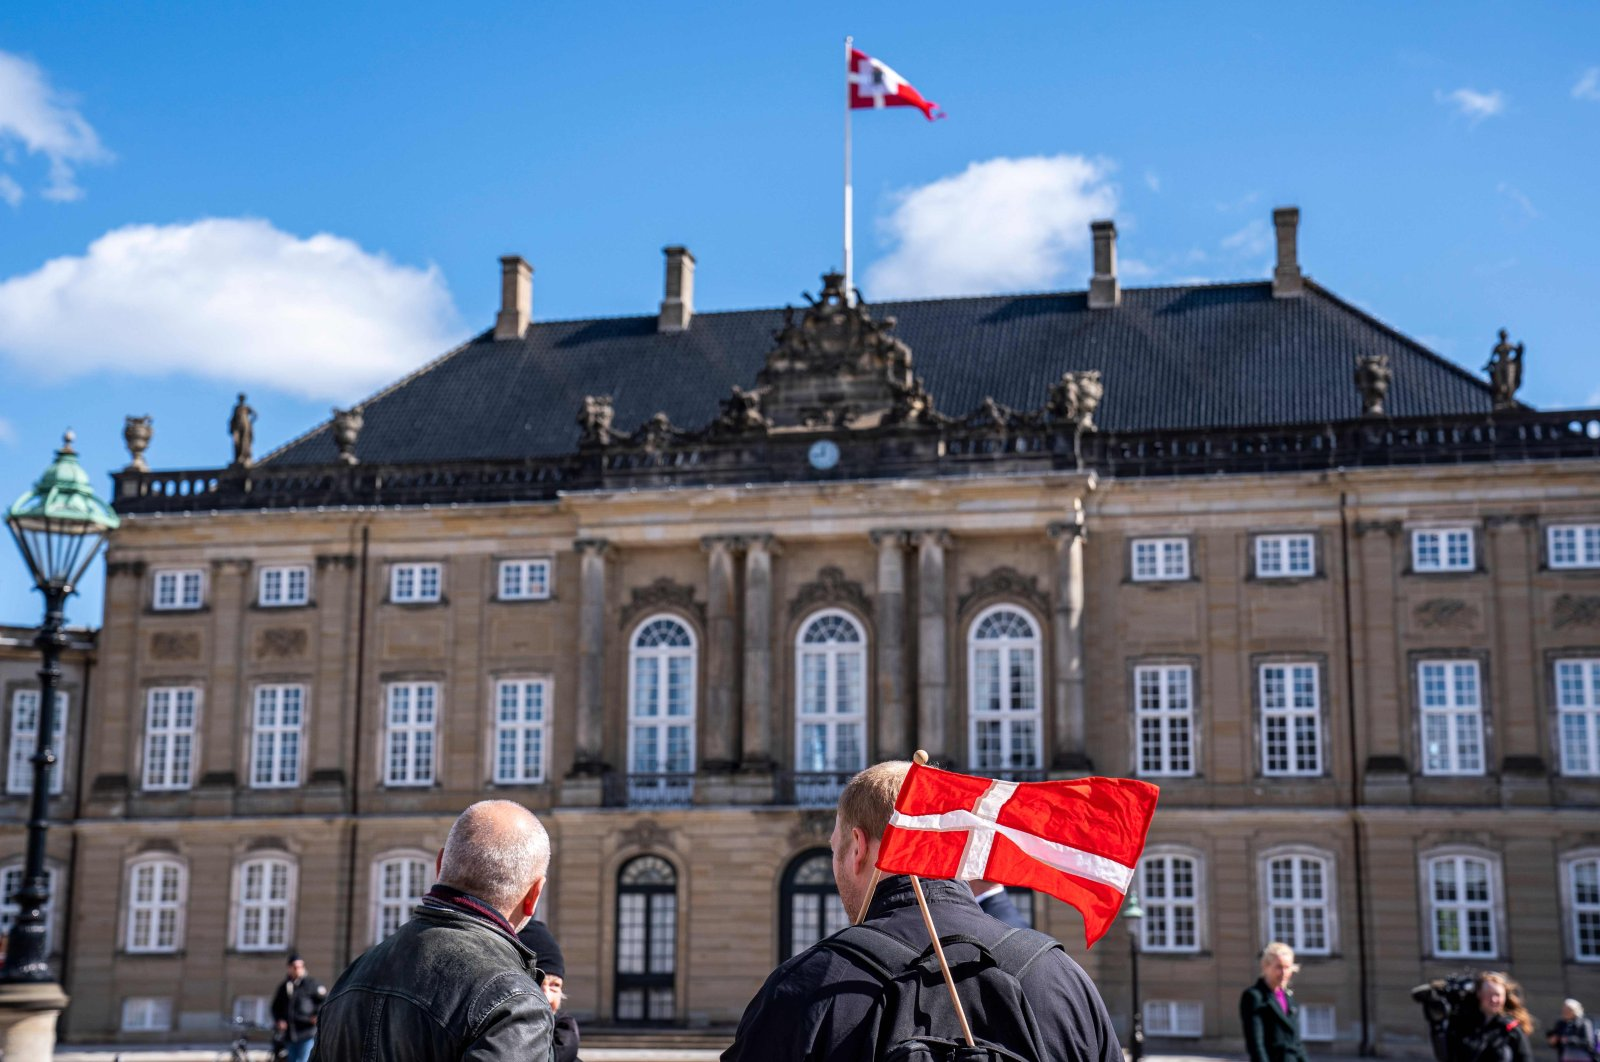 People are seen at Amalienborg Palace Square to mark the birthday of Danish Queen Margrethe in Copenhagen on April 16, 2020. (AFP Photo)